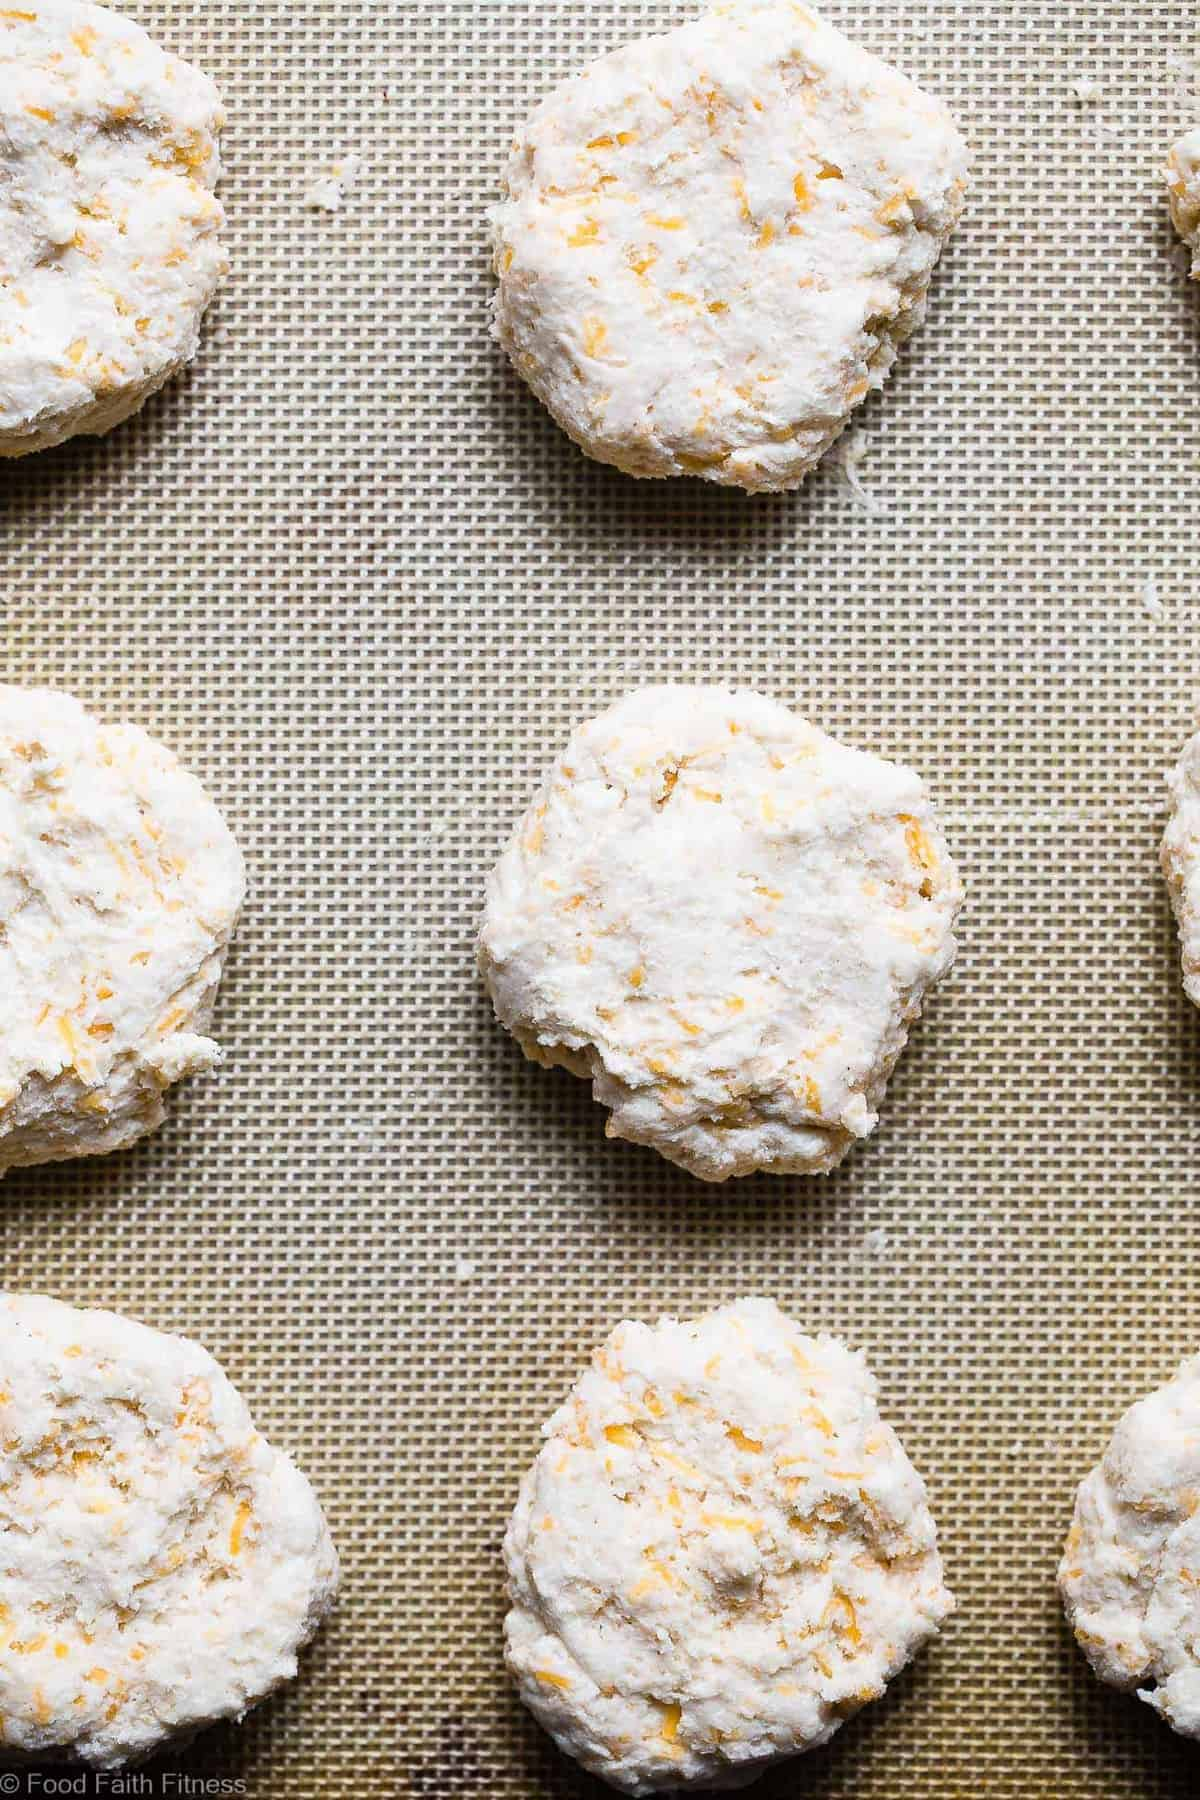 Cheddar Gluten Free Biscuits with Buttermilk -This gluten free biscuit recipeare SO flaky, soft and buttery that you won't believe how easy they are! These are hands down the BEST gluten free biscuits! | #Foodfaithfitness | #Glutenfree #Healthy #Biscuits #Sugarfree